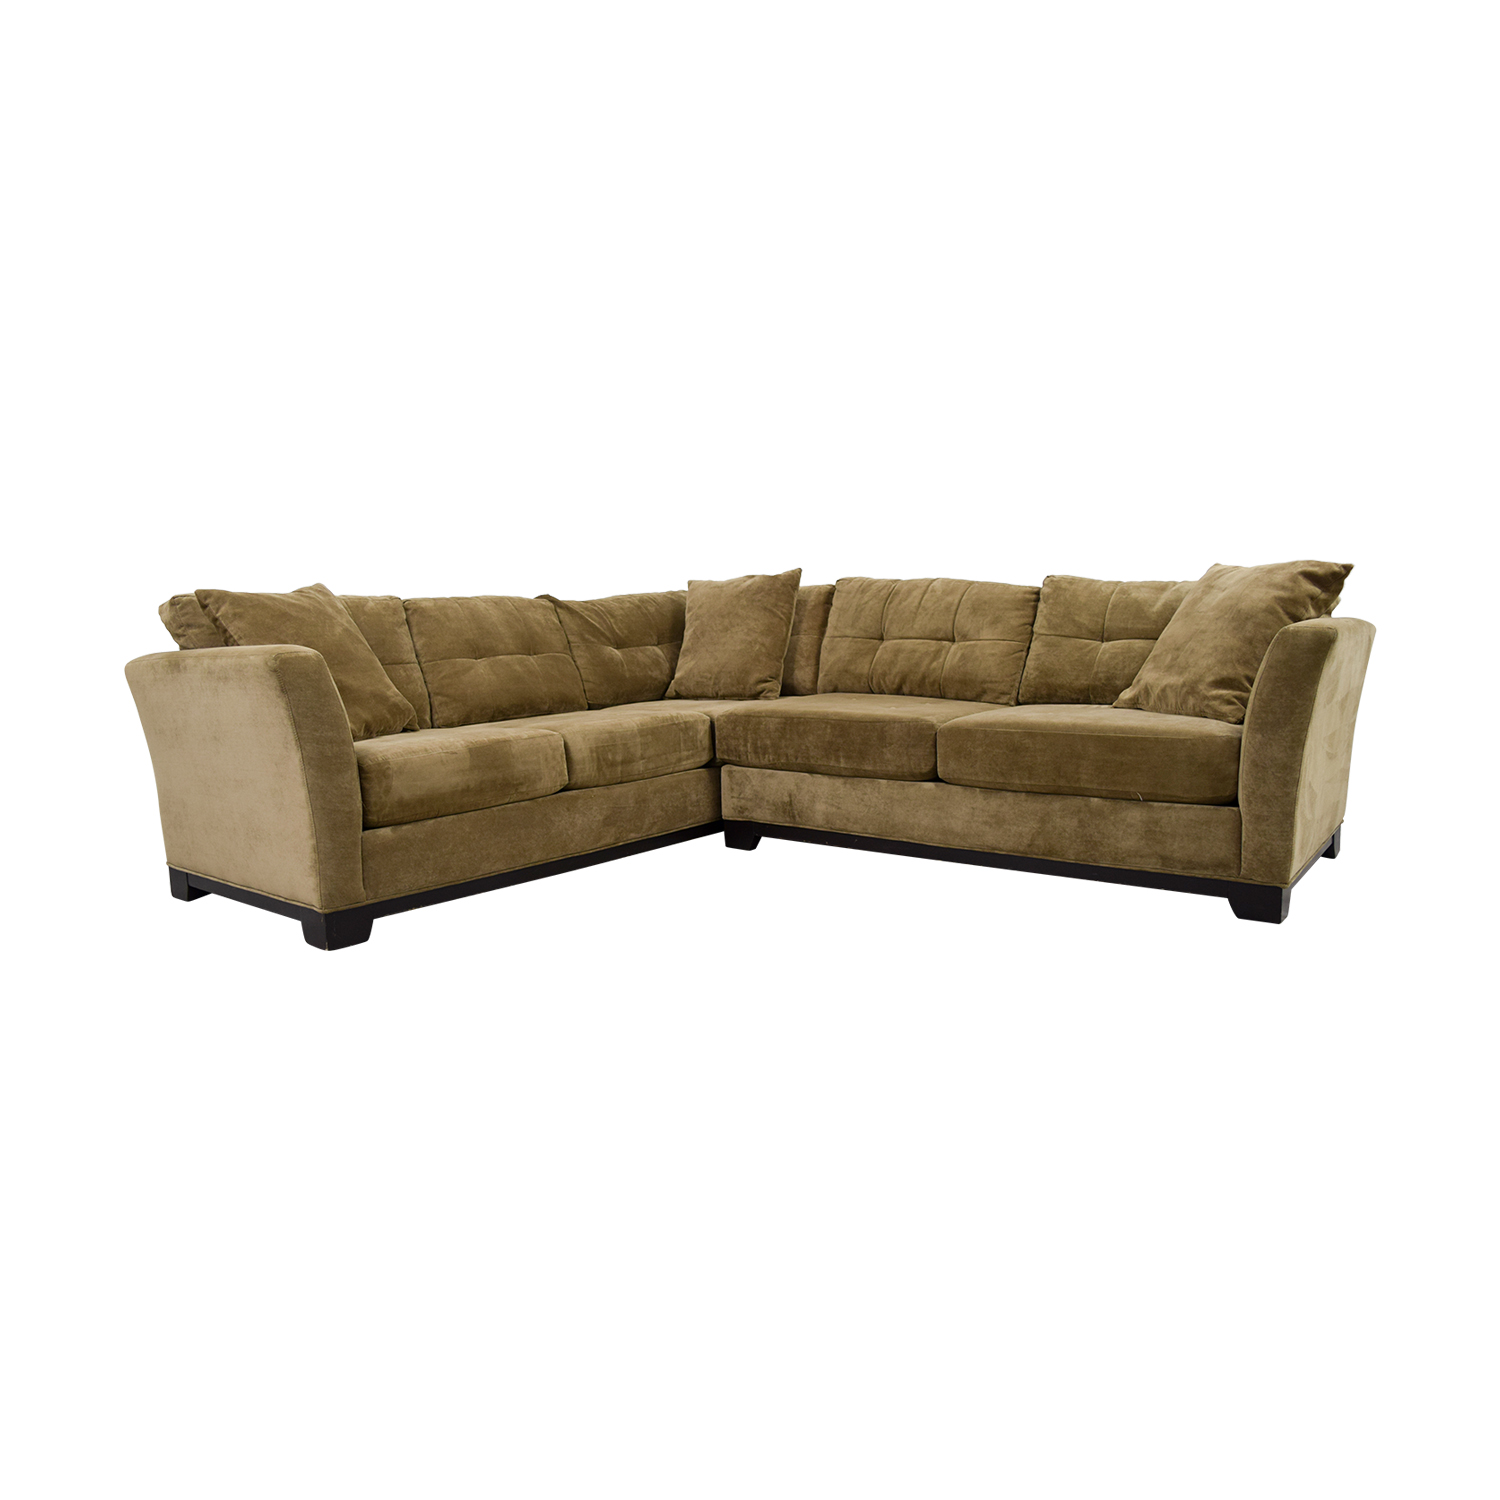 Macys sectional sofa rylee fabric 2 piece sectional sofa for Microfiber sectional sofa